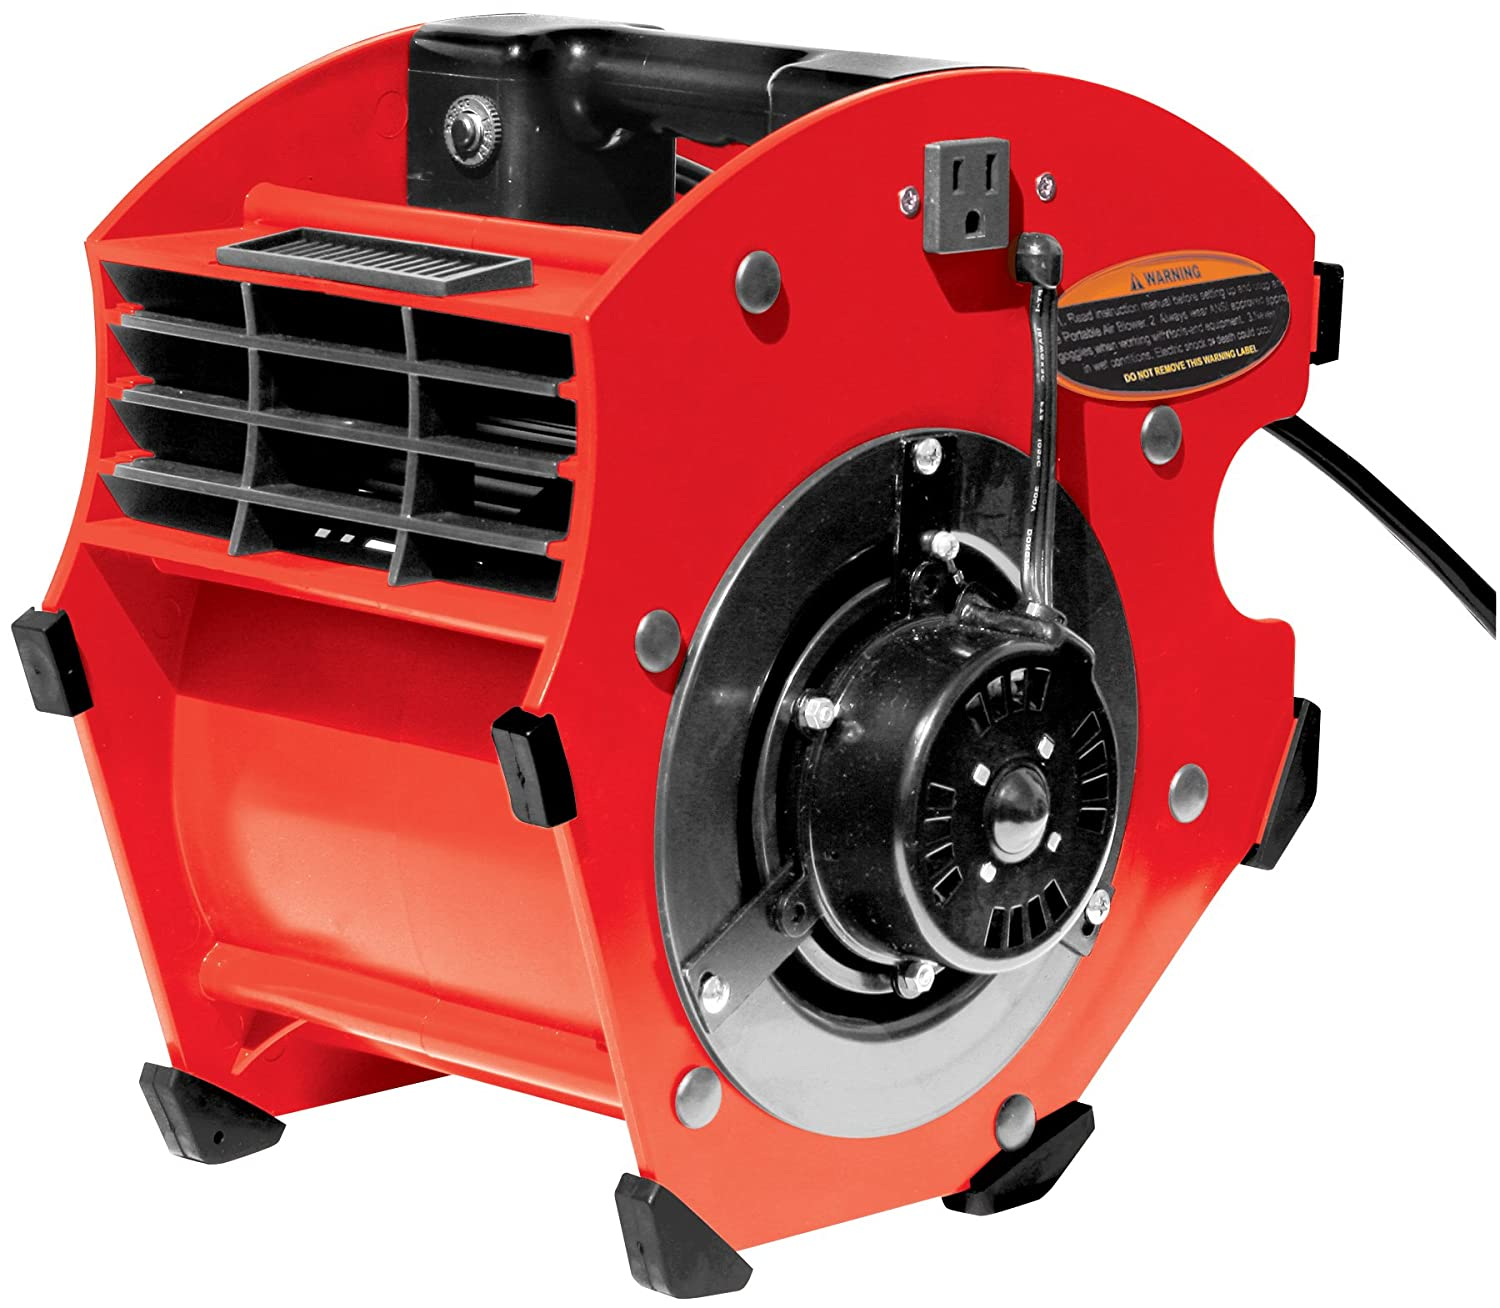 Performance Tool W50061 Variable S peed 300 CFM Electric Blower Amazon Frustration Free